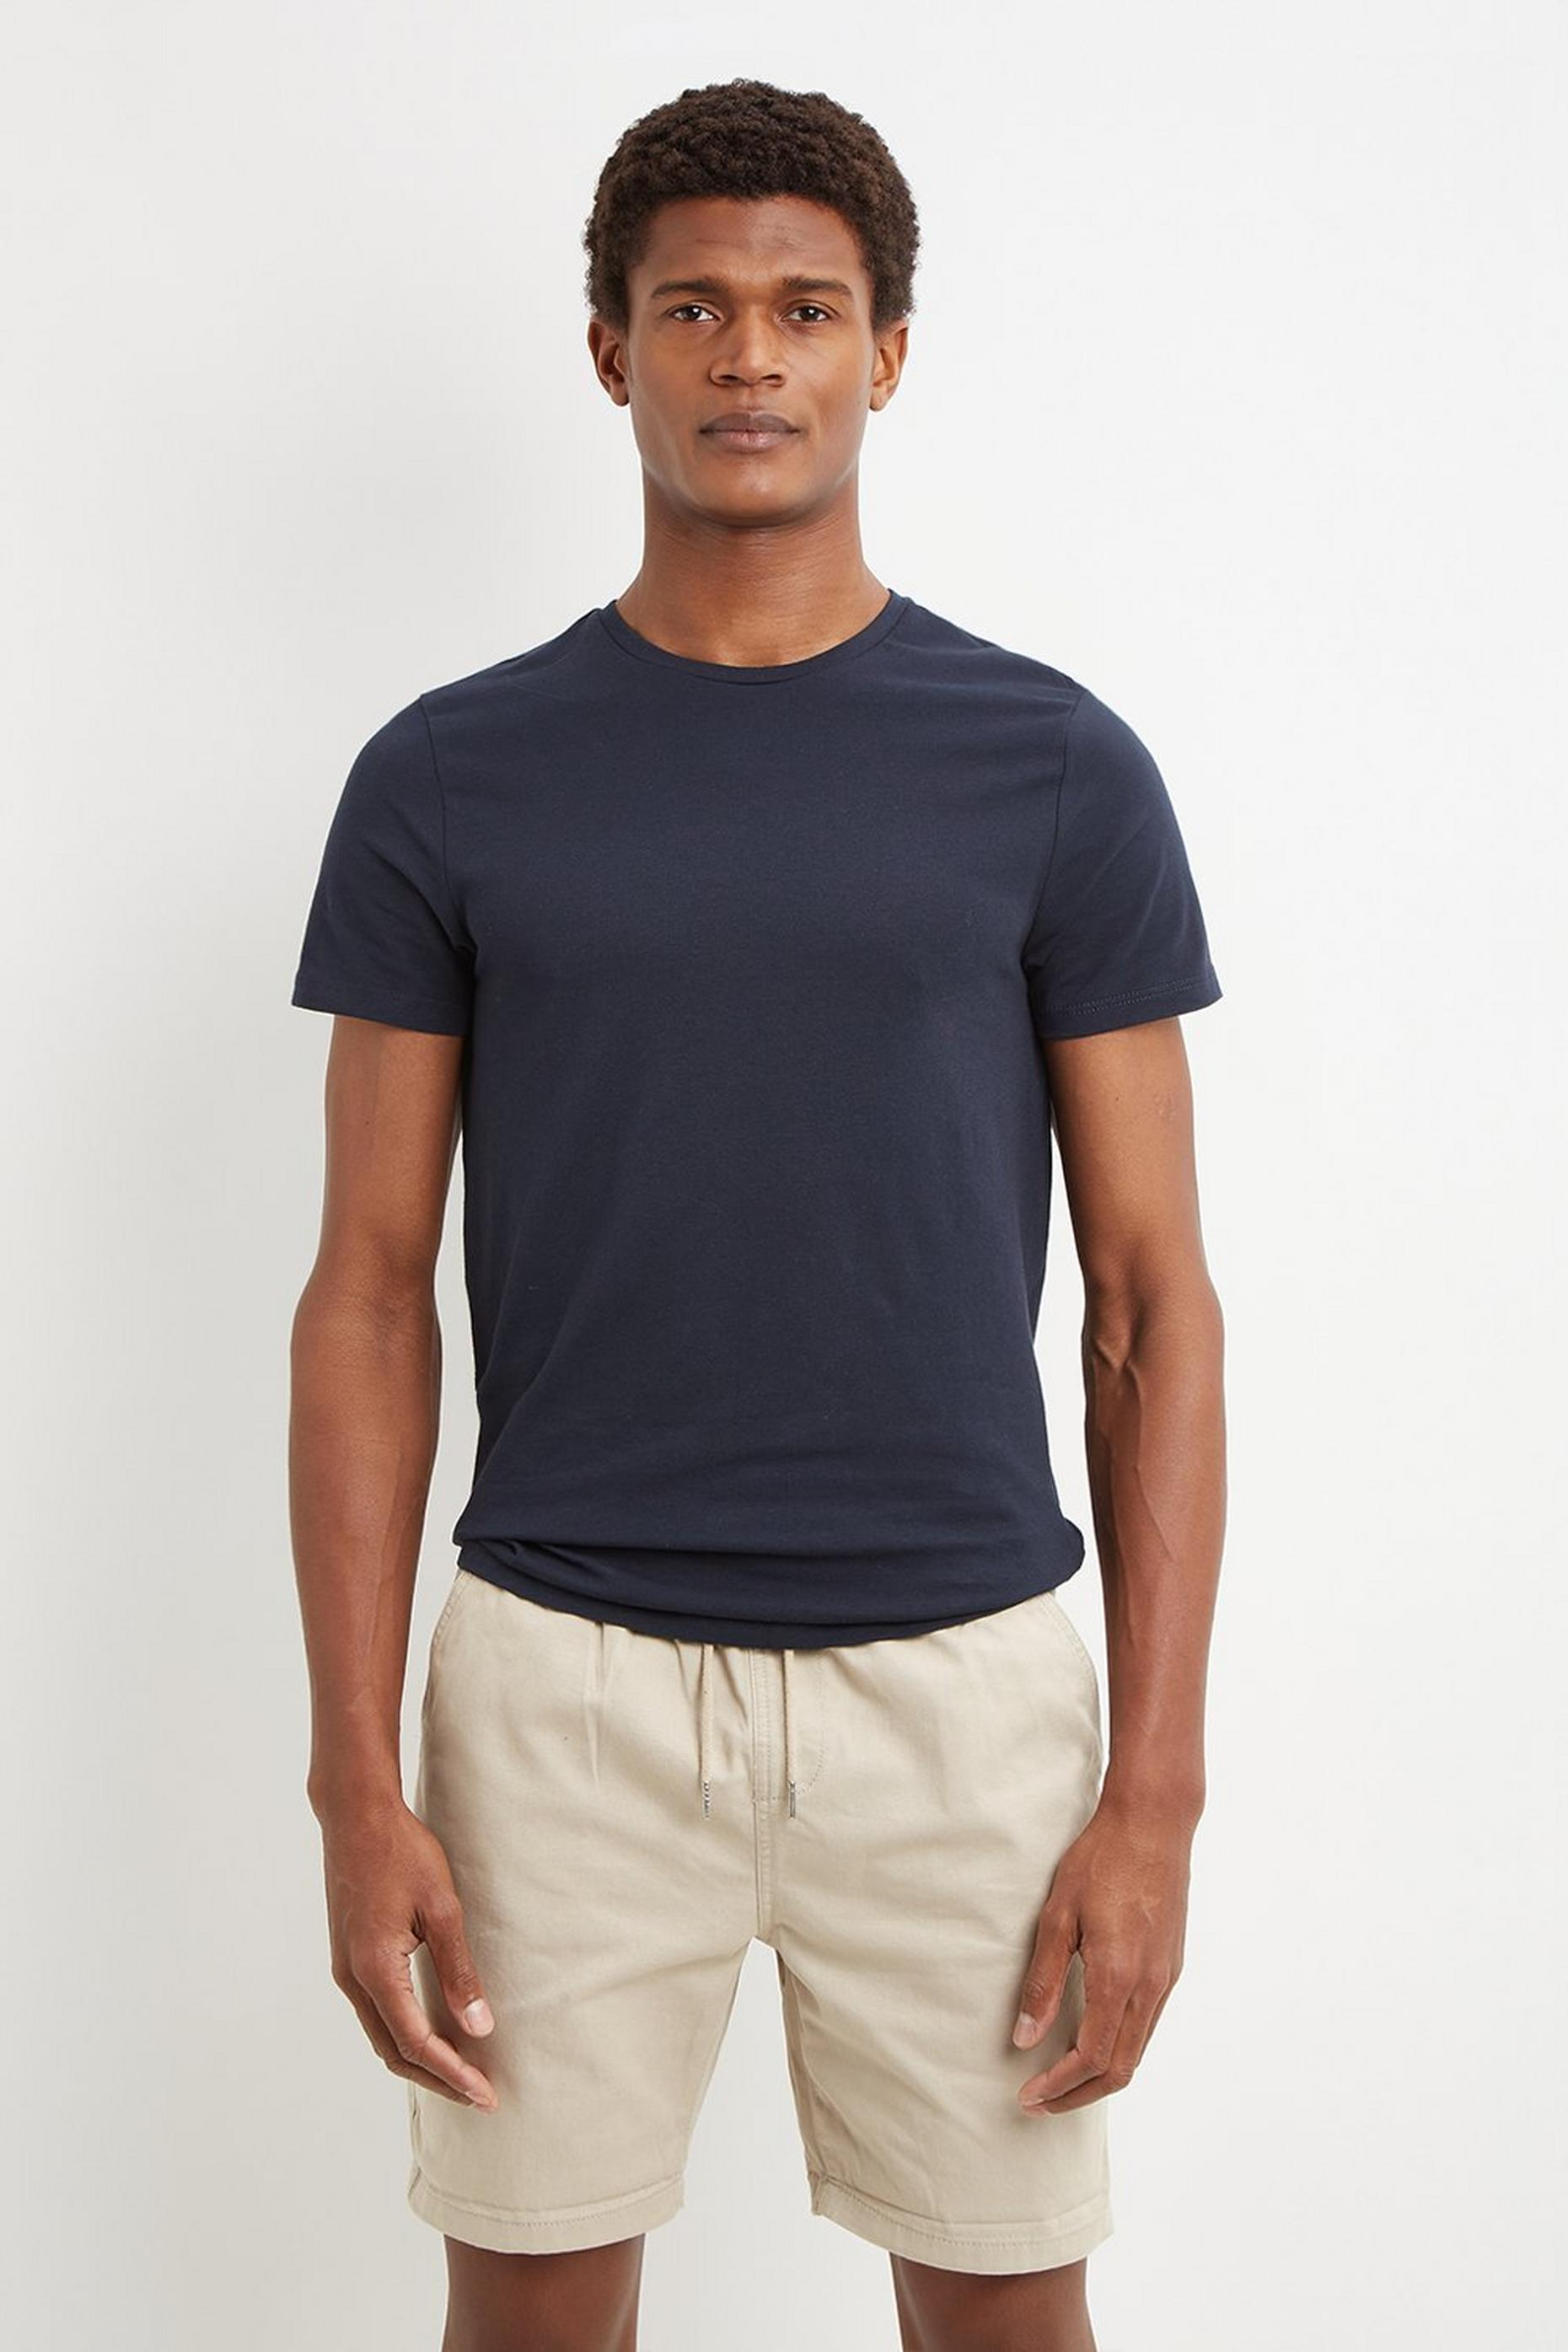 Navy Muscle Fit Short Sleeve TShirt